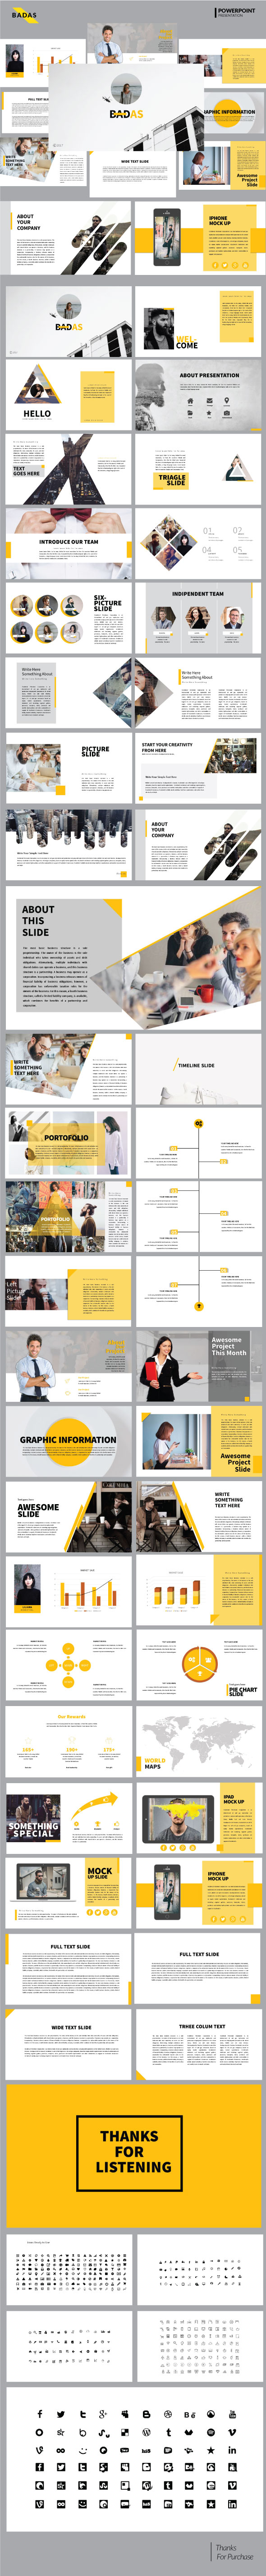 Badas - Creative Multipurpose Presentation Templates - PowerPoint Templates Presentation Templates